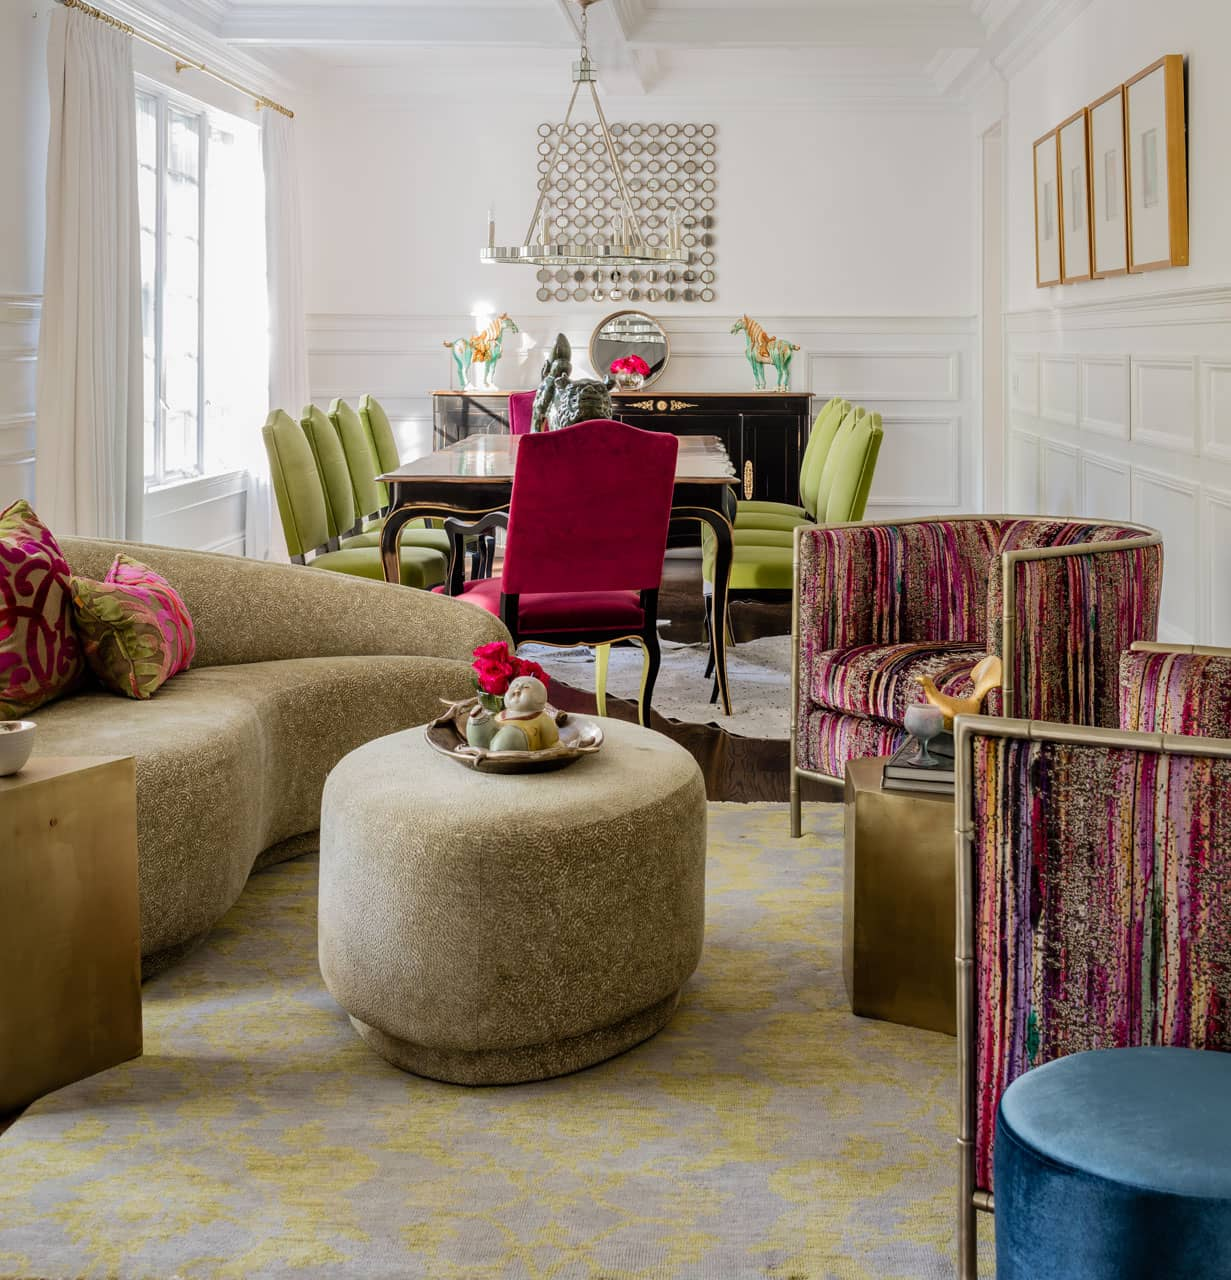 Colorfully upholstered tub chairs were the inspiration for magenta and lime green touches found throughout the elongated space.